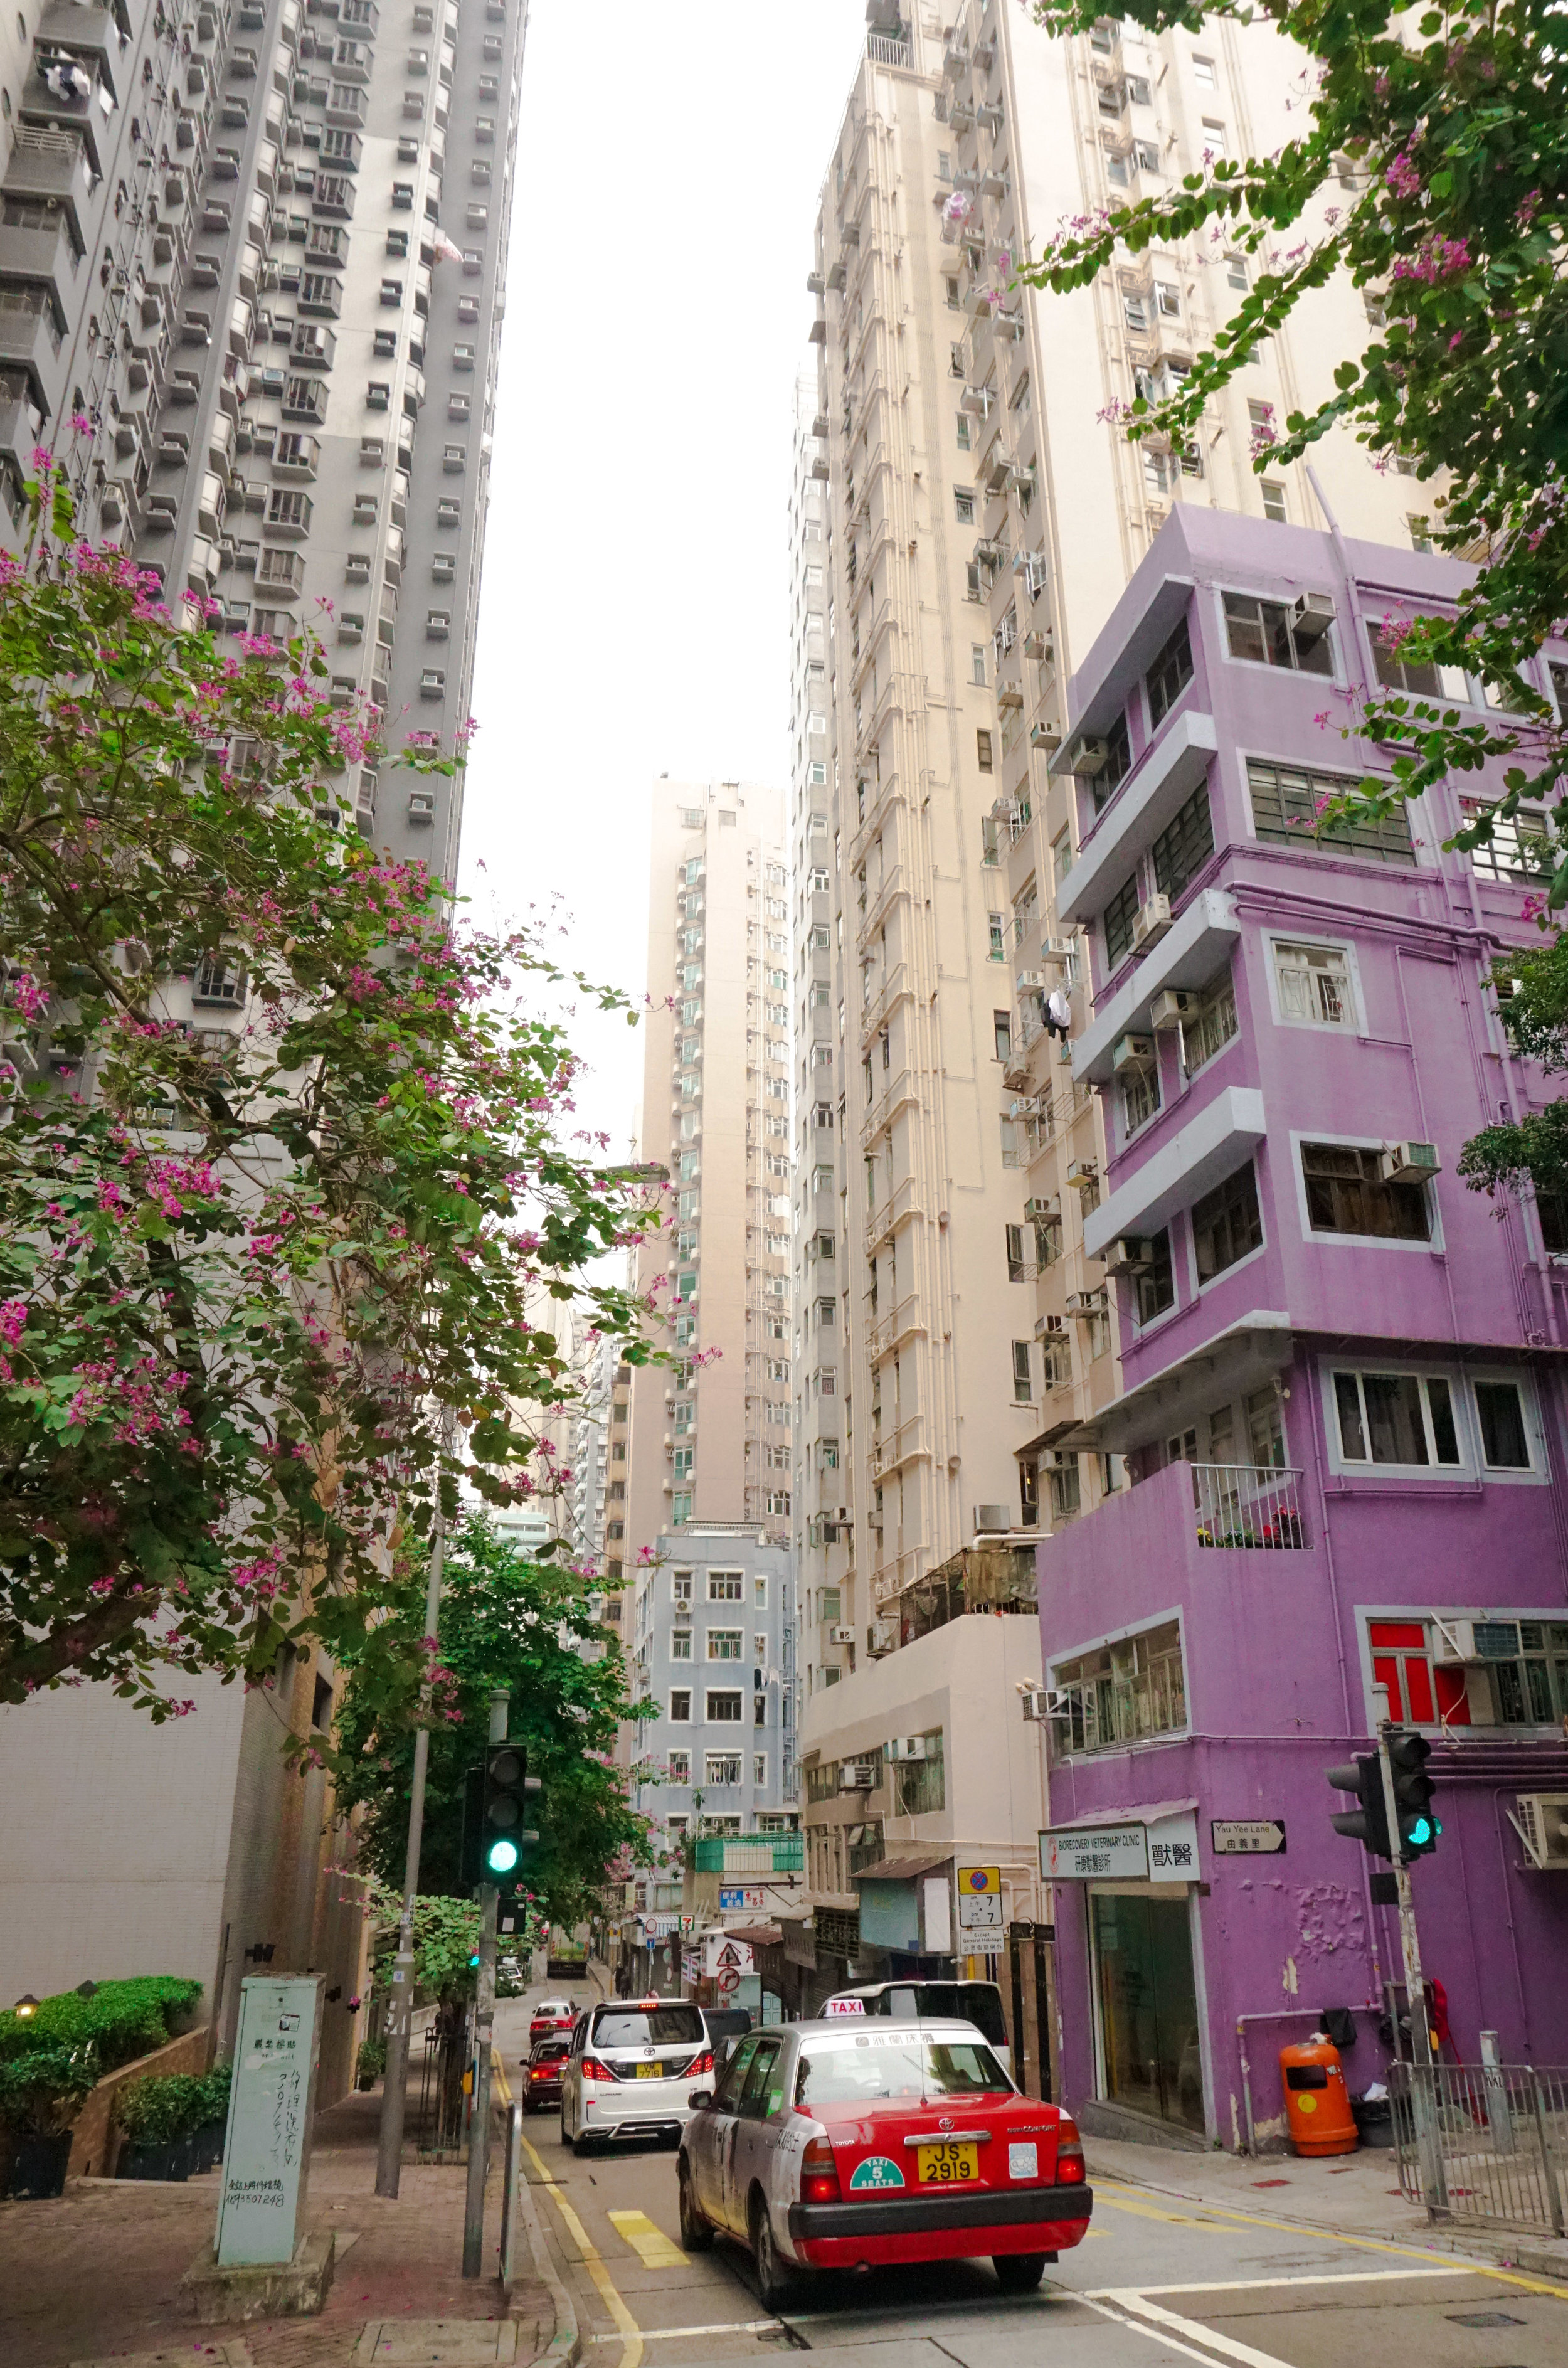 curio.trips.hong.kong.street.taxi.purple.building.pink.flowers.portrait-2.jpg